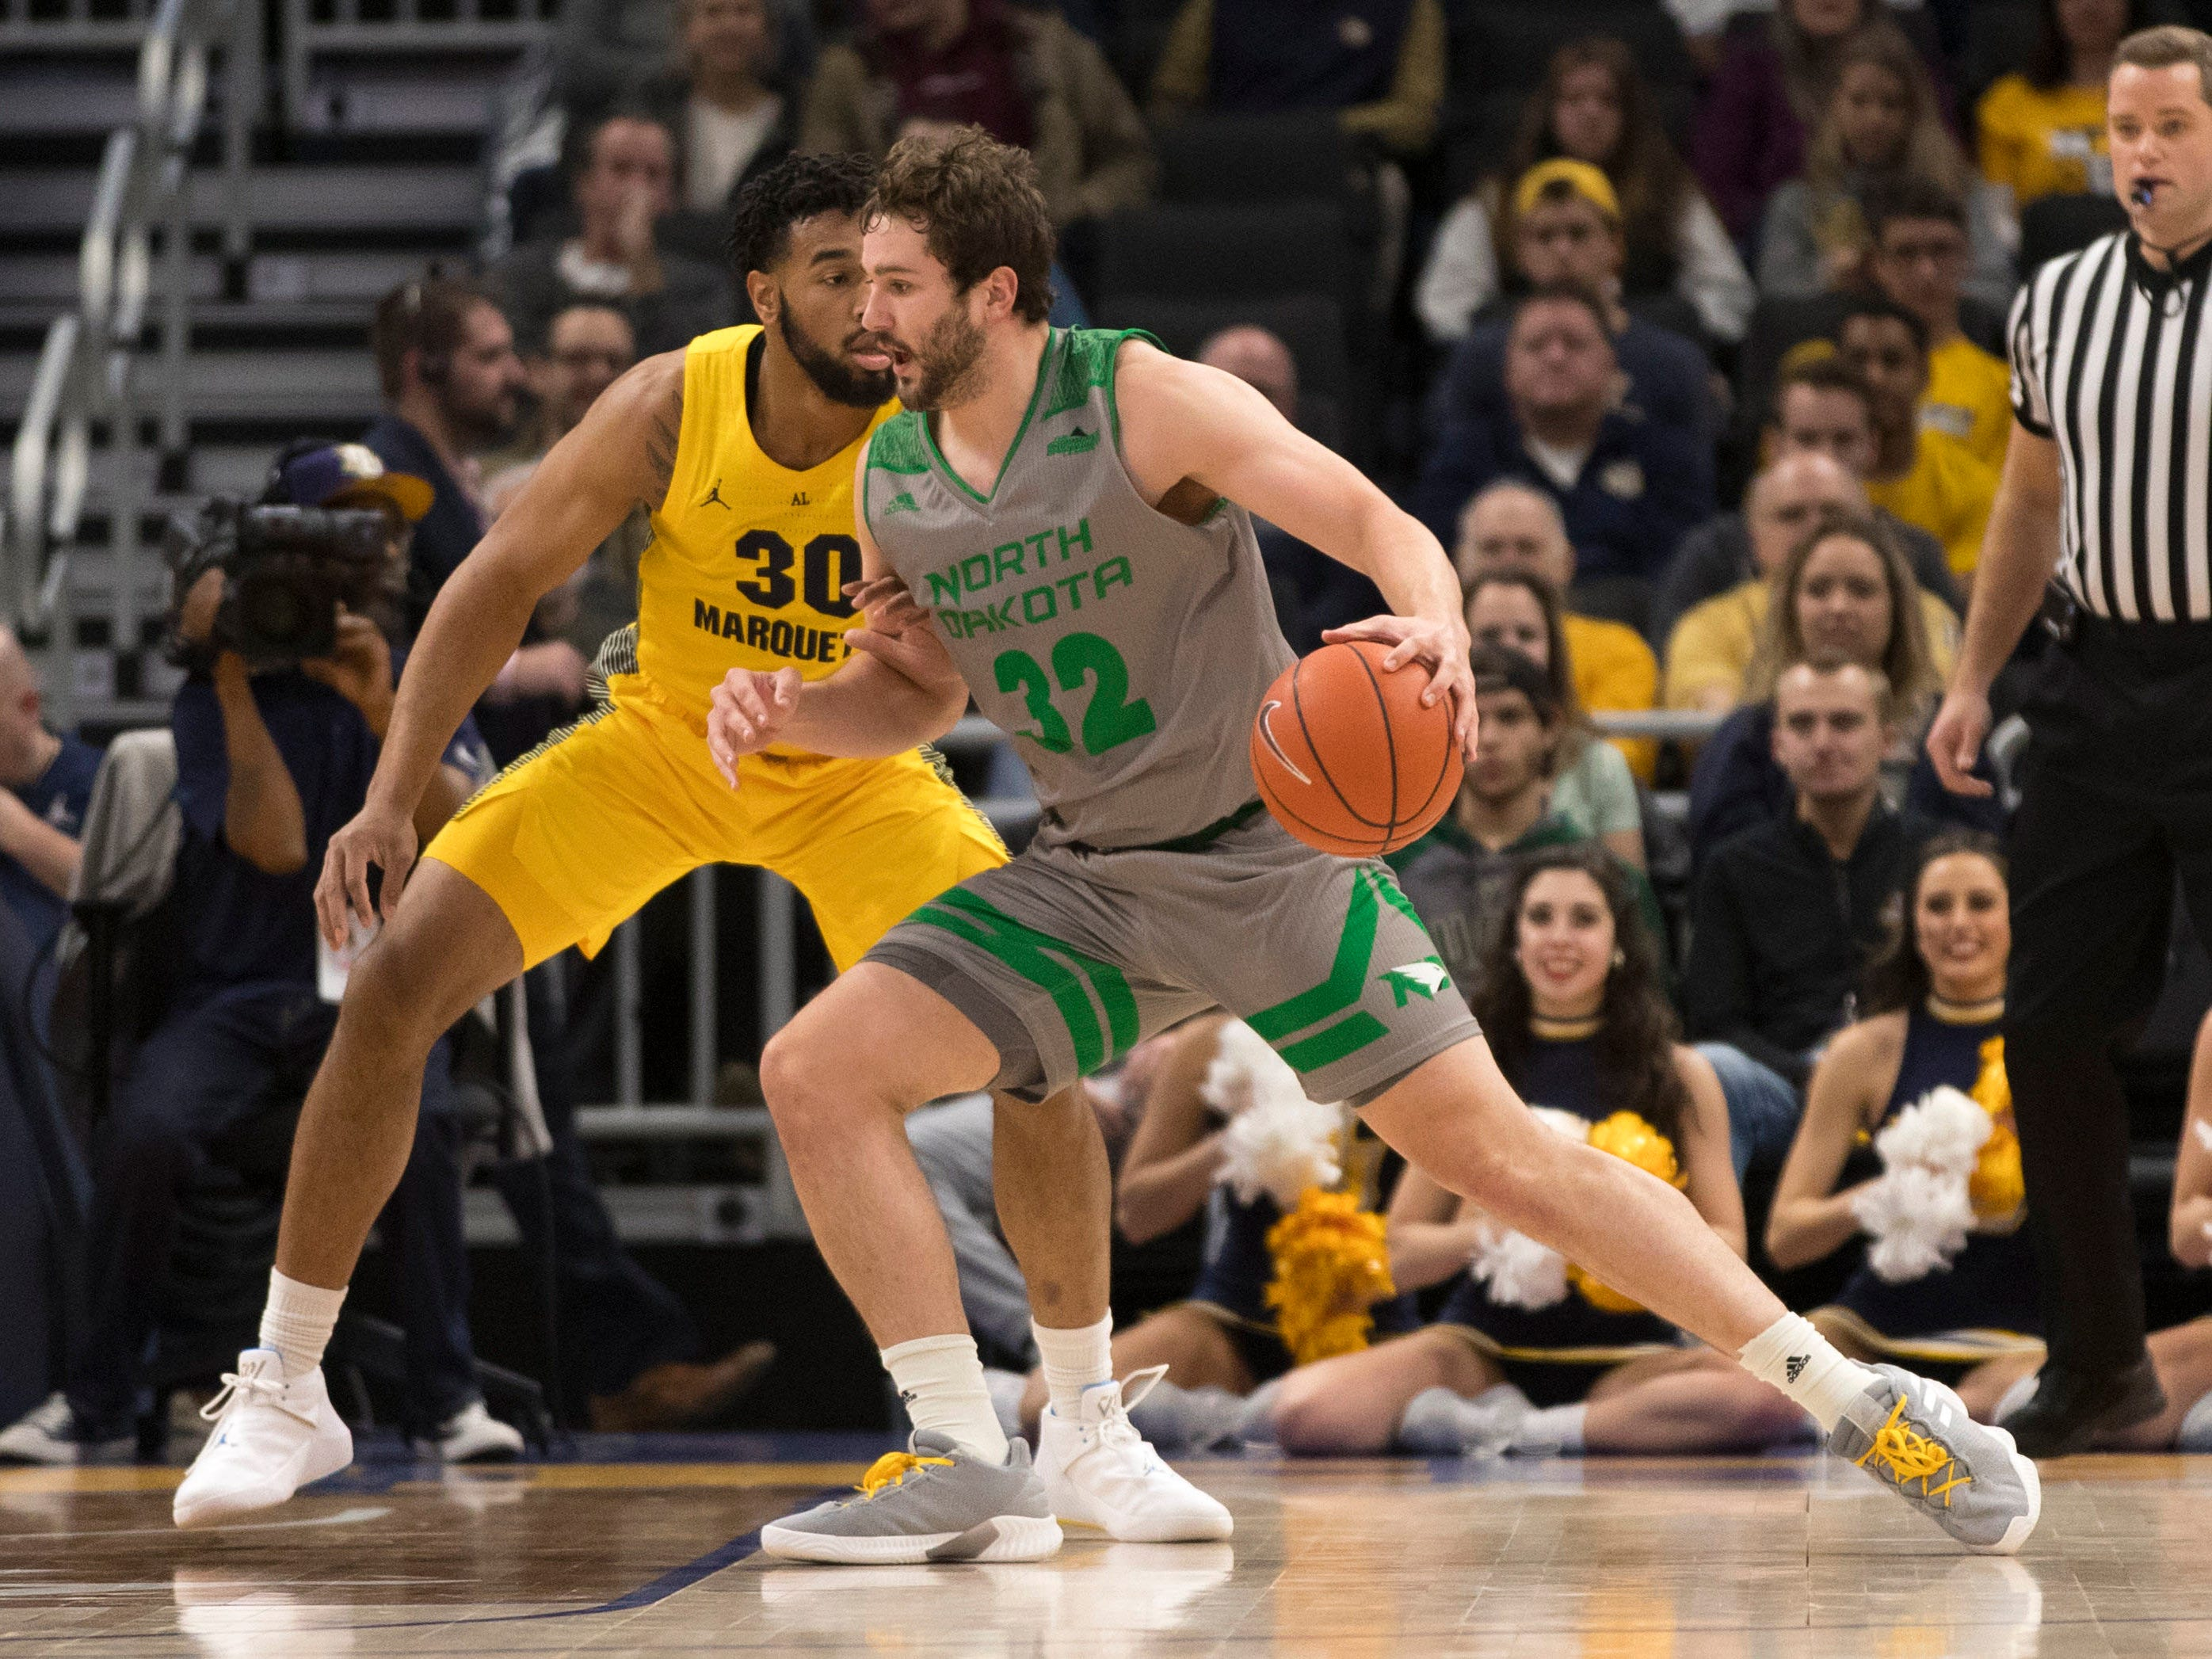 North Dakota forward Conner Avants tries to get around Marquette forward Ed Morrow on the block during the first half Monday night at Fiserv Forum.